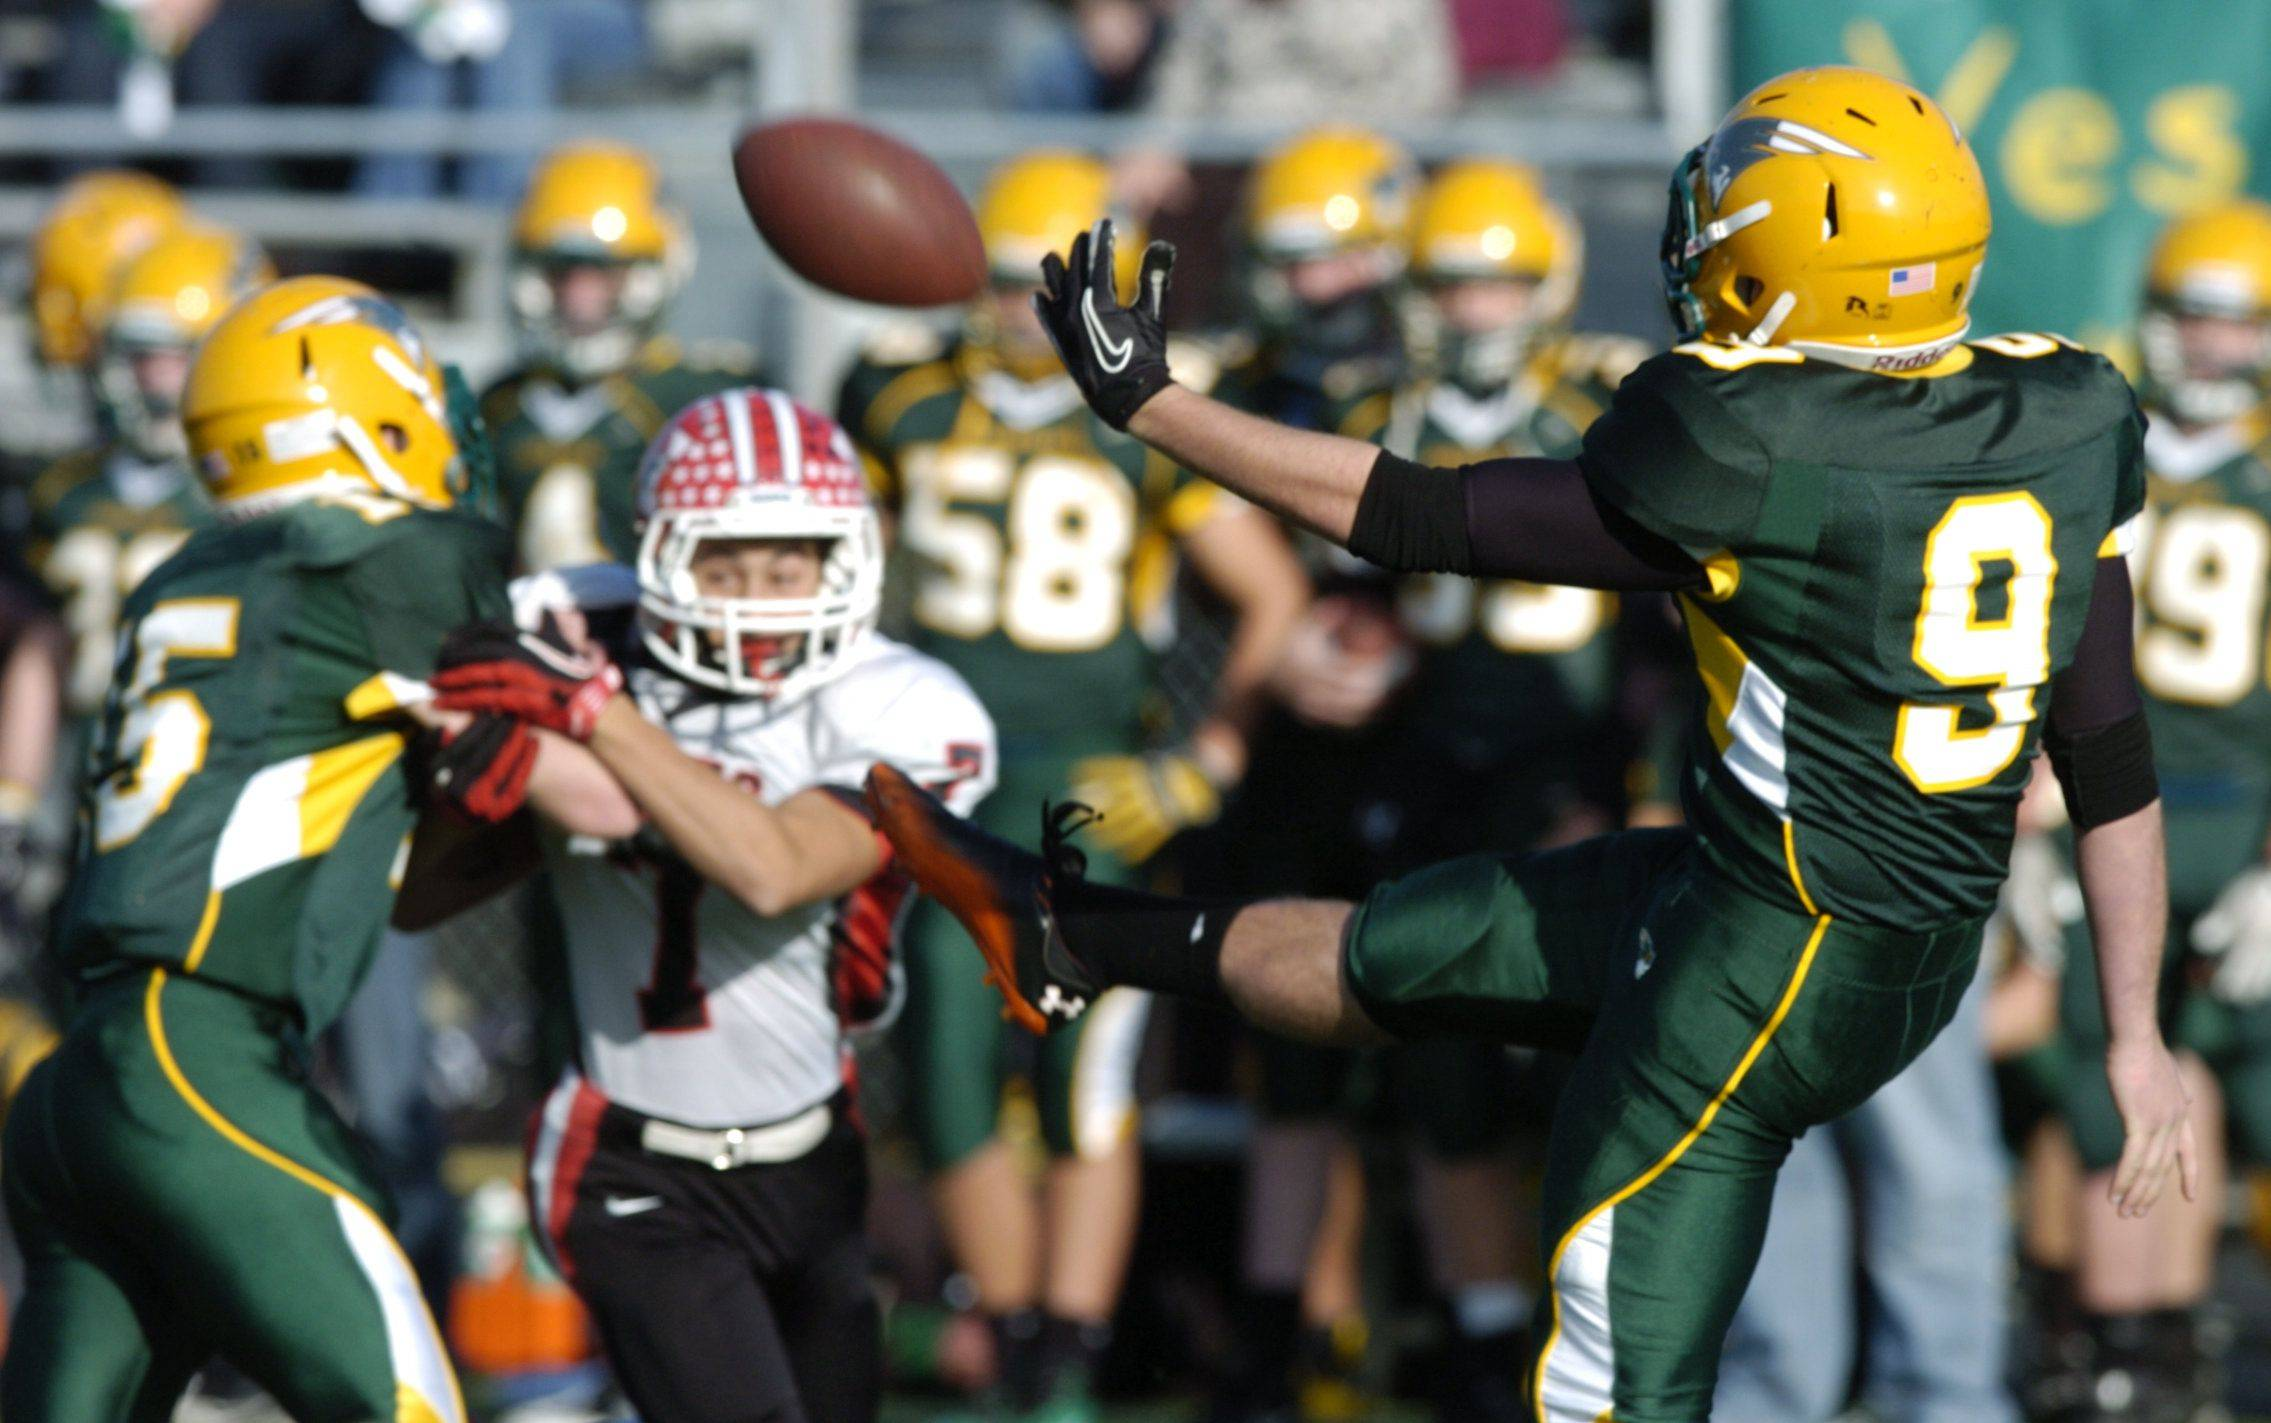 Playoffs - Round Two - Photos from the Maine South at Stevenson football game Saturday, November 5th.